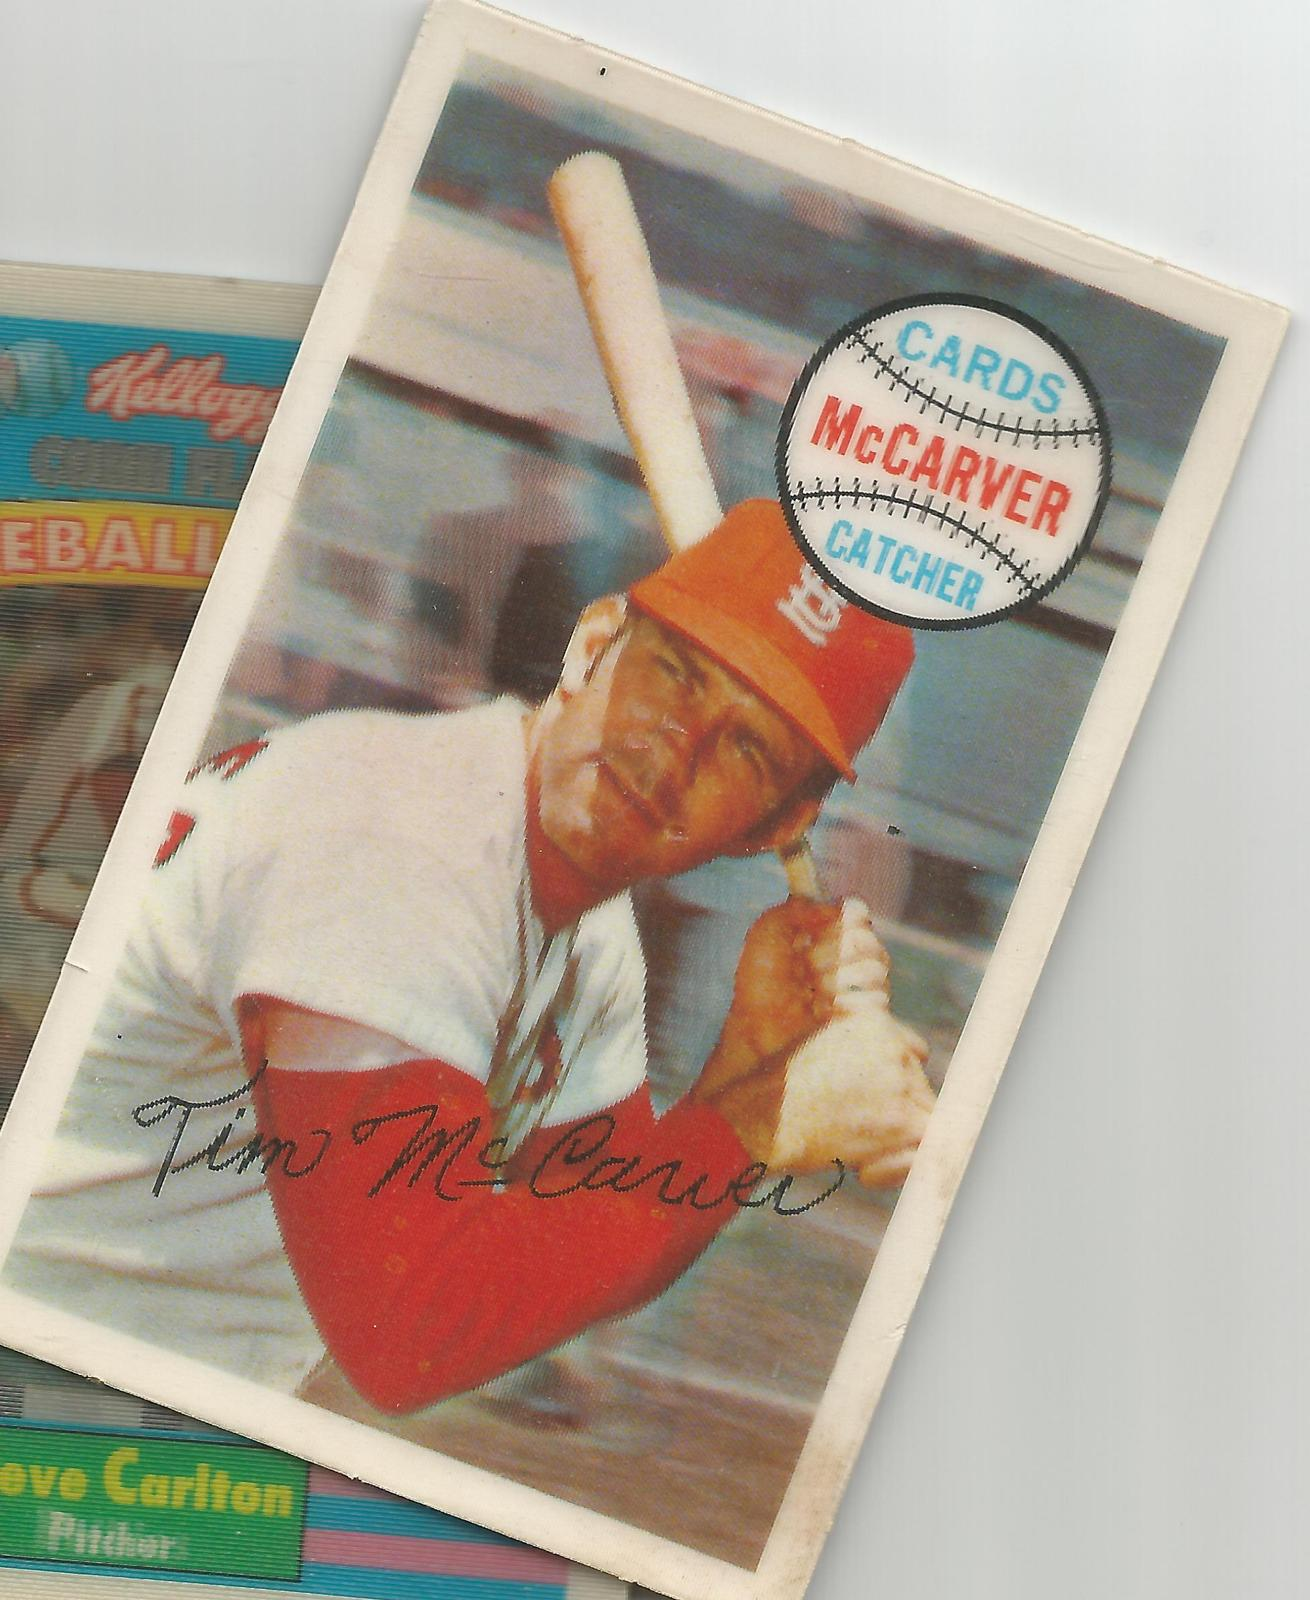 LOT OF 70'S BASEBALL CARDS -  list is in description - @250.00 value - FREE SHIP